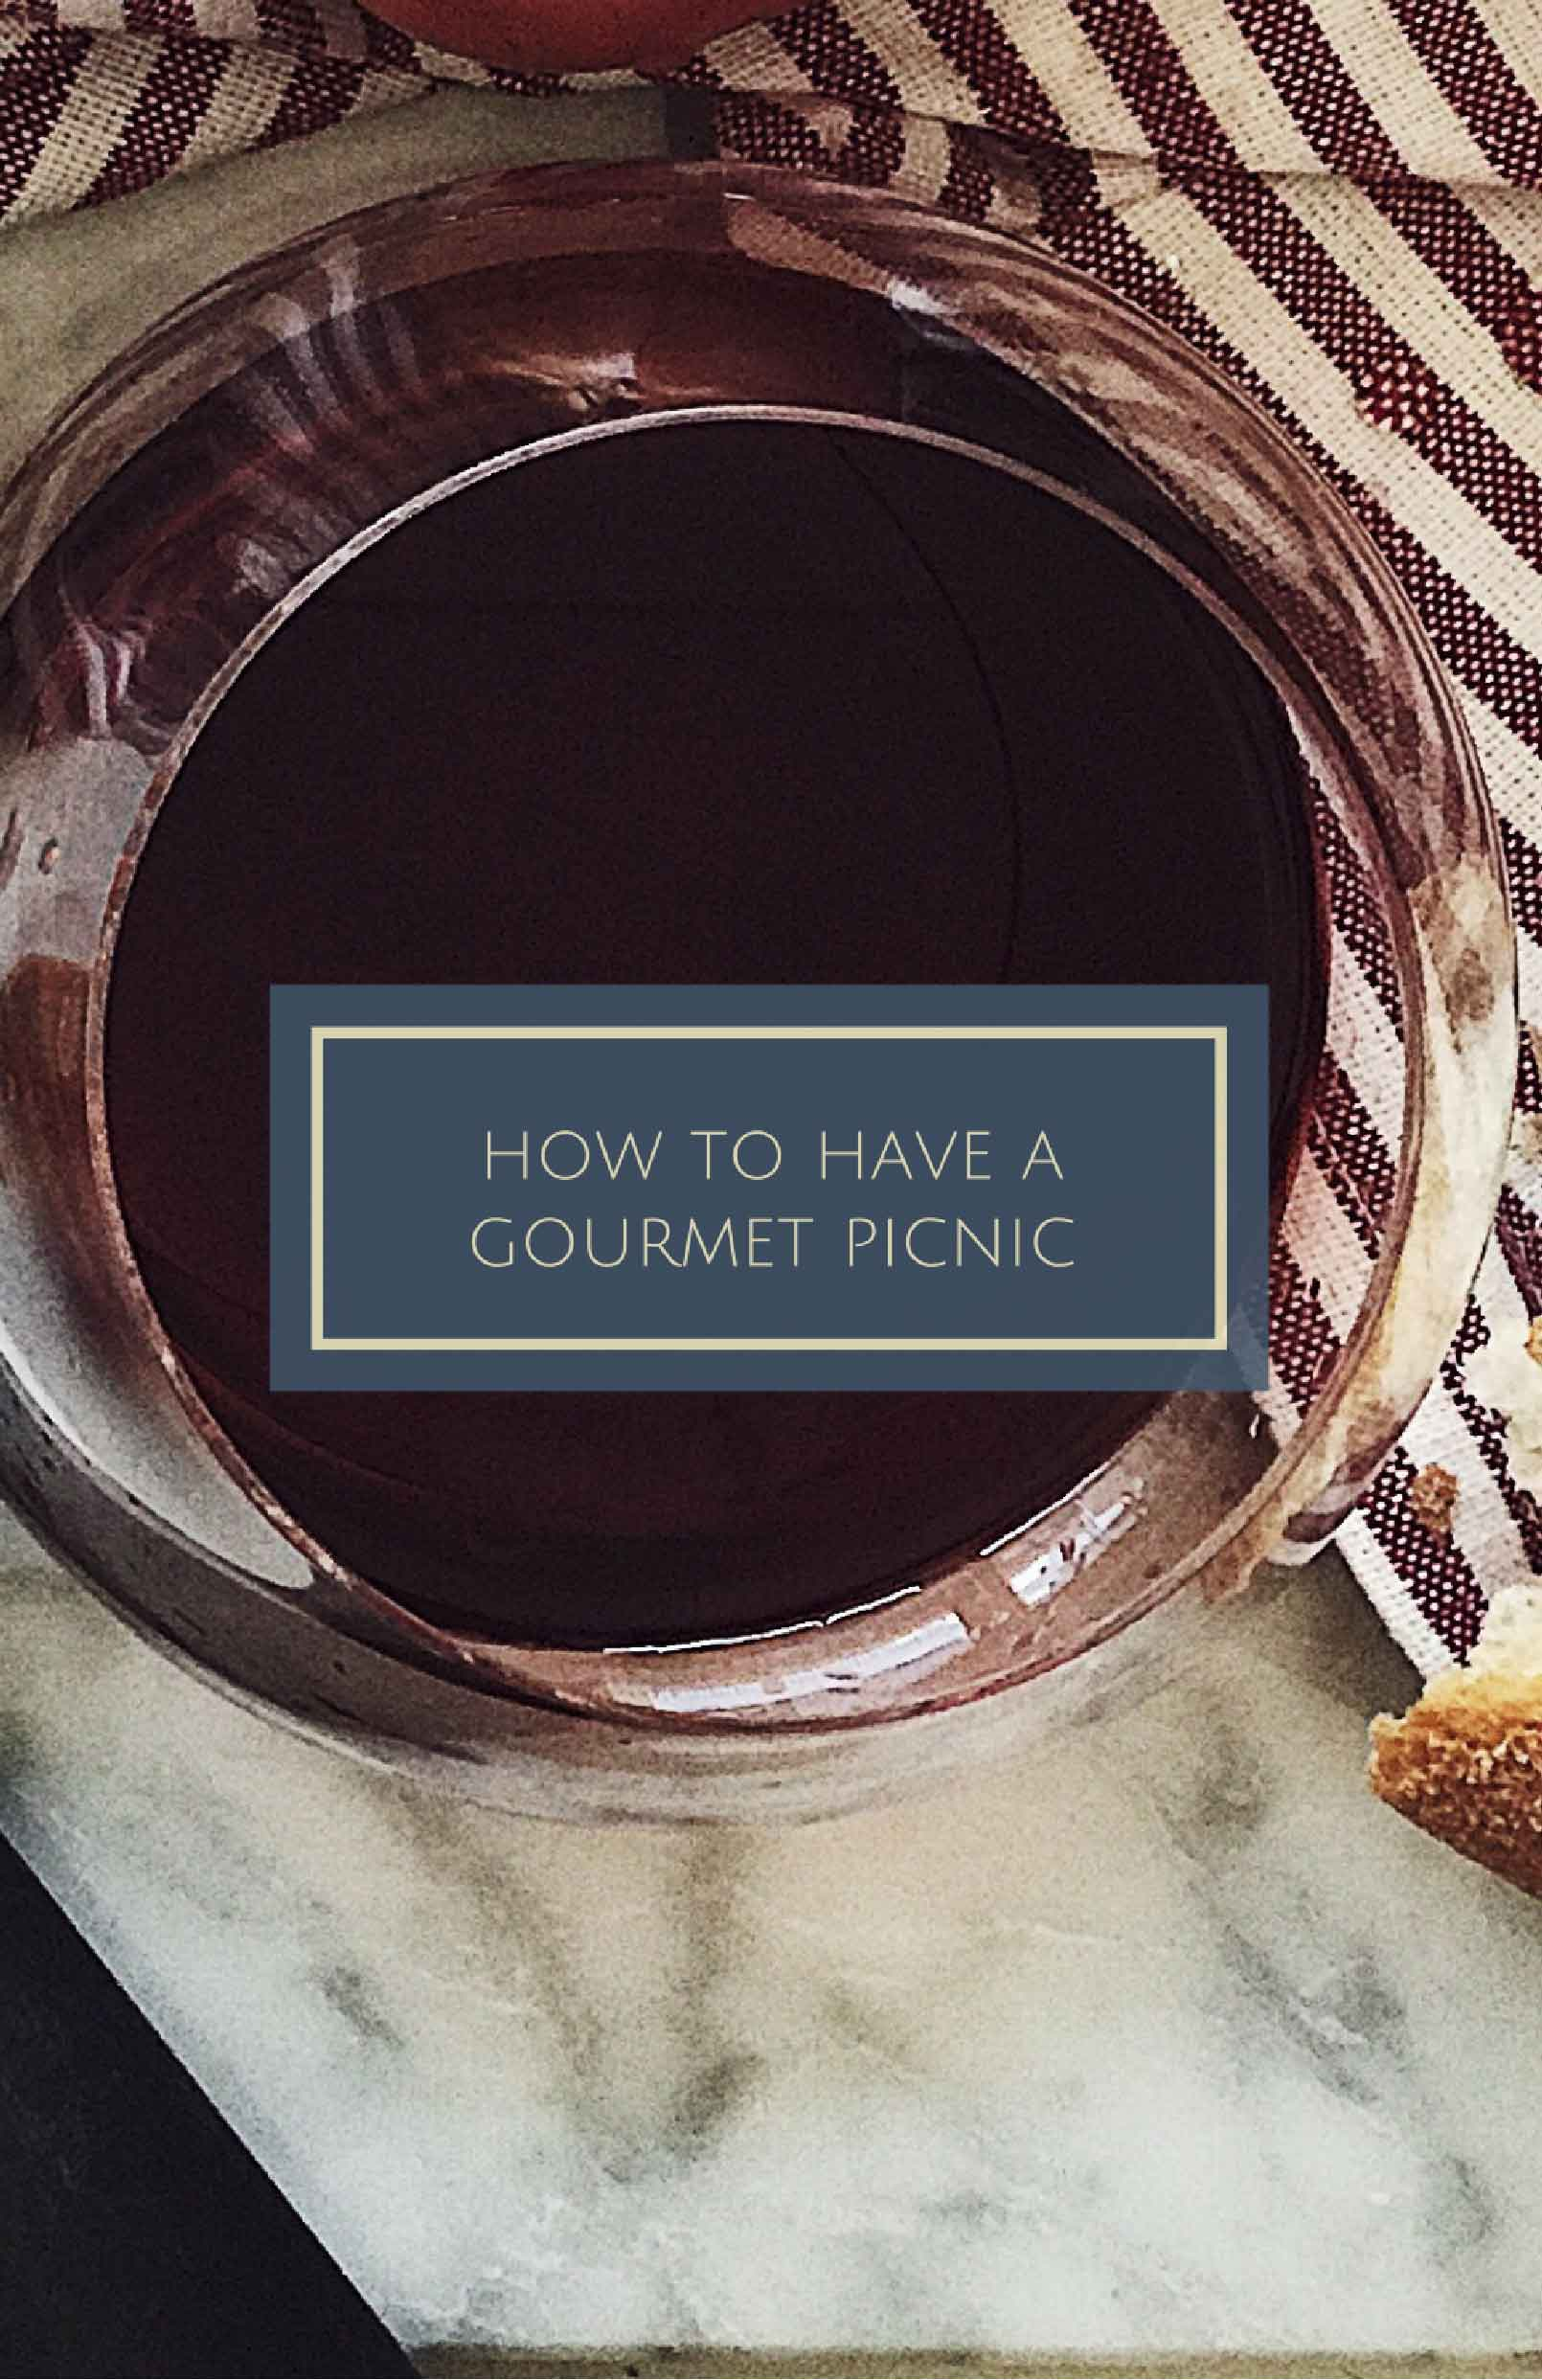 how to have a gourmet picnic | picnic food ideas & more